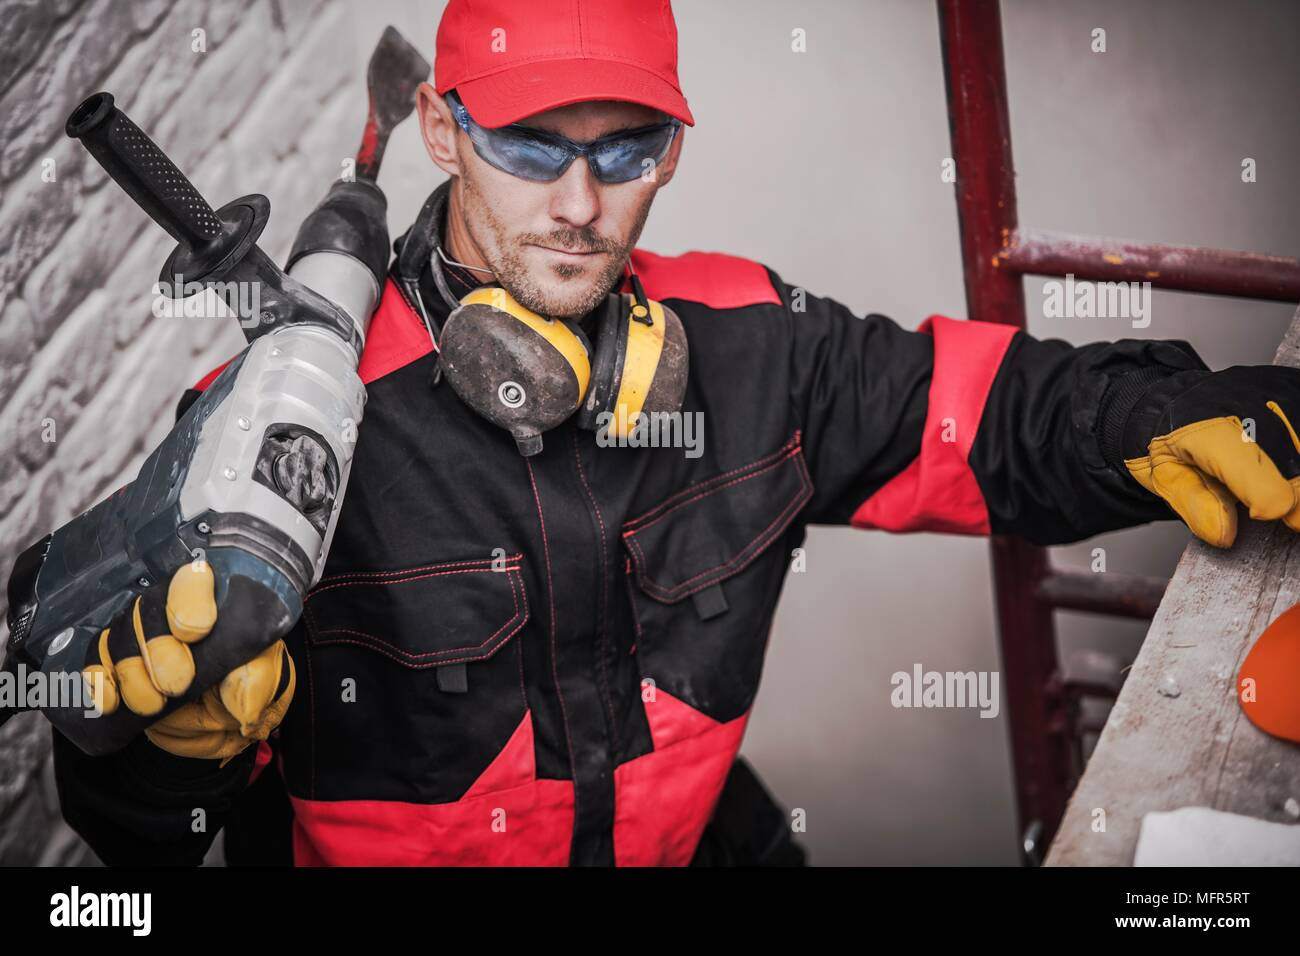 Caucasian Construction Worker with Heavy Duty Power Tool. - Stock Image